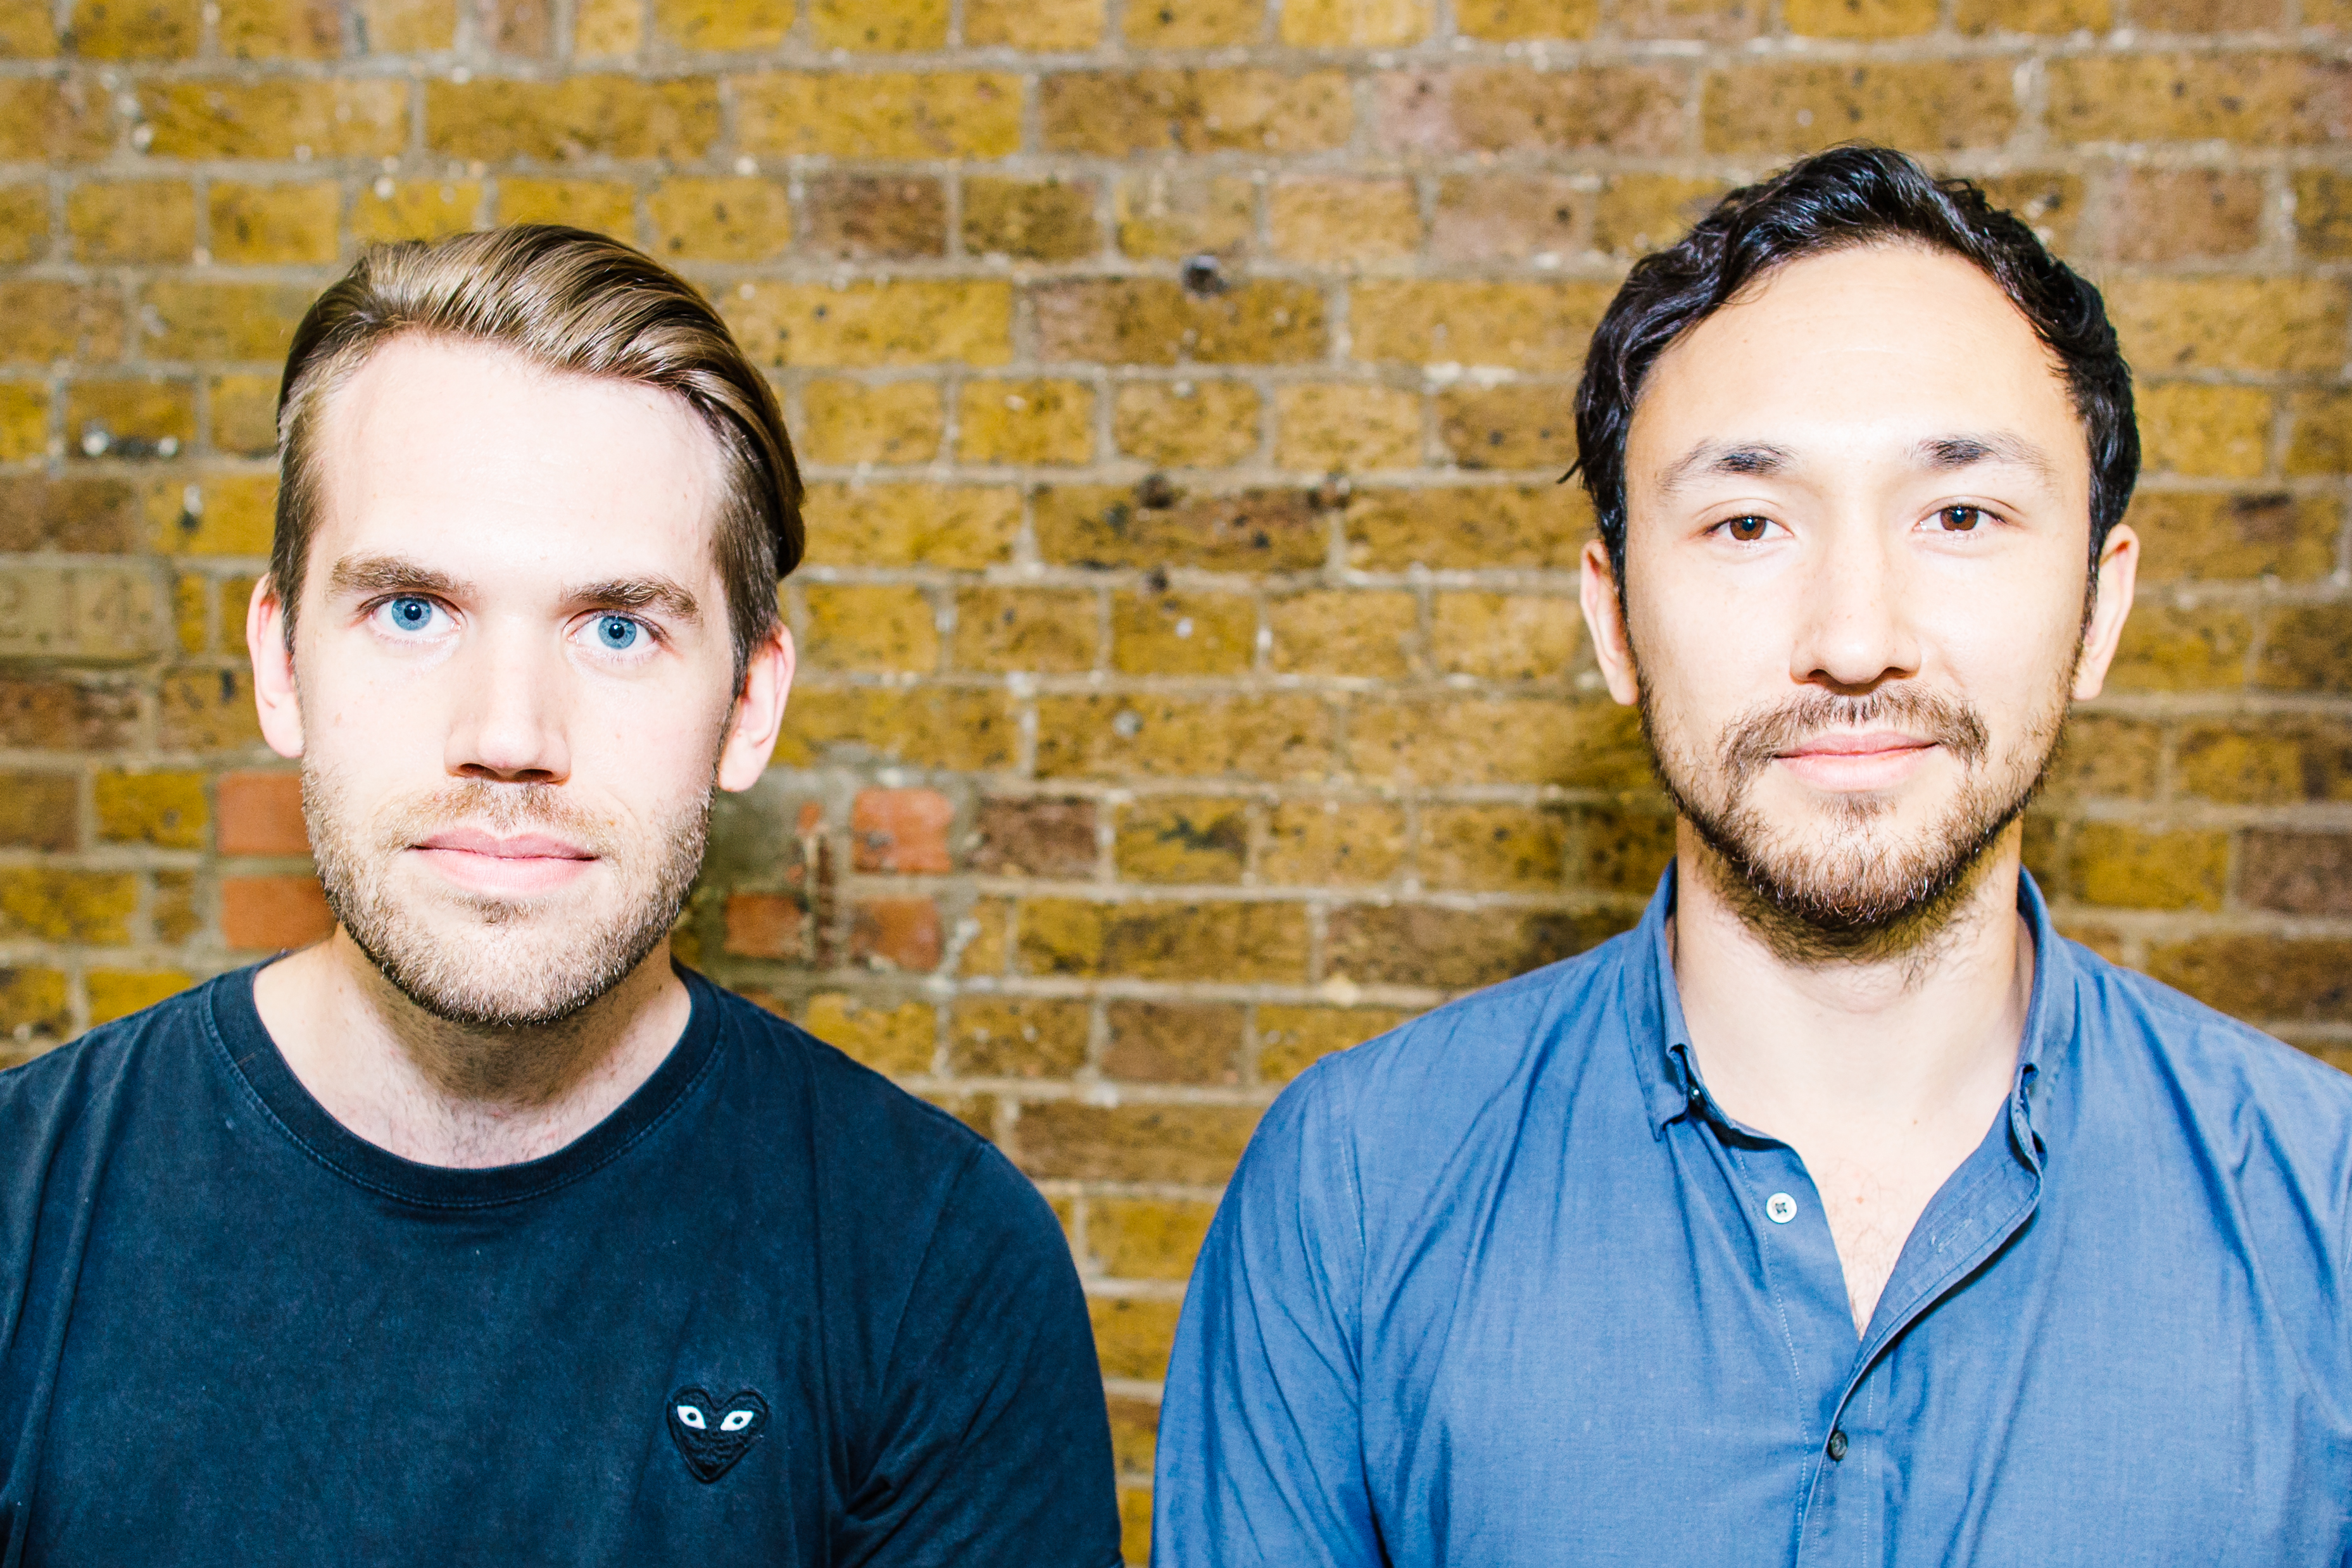 techcrunch.com - Steve O'Hear - Portify raises £1.3M to help gig economy workers improve their financial wellbeing